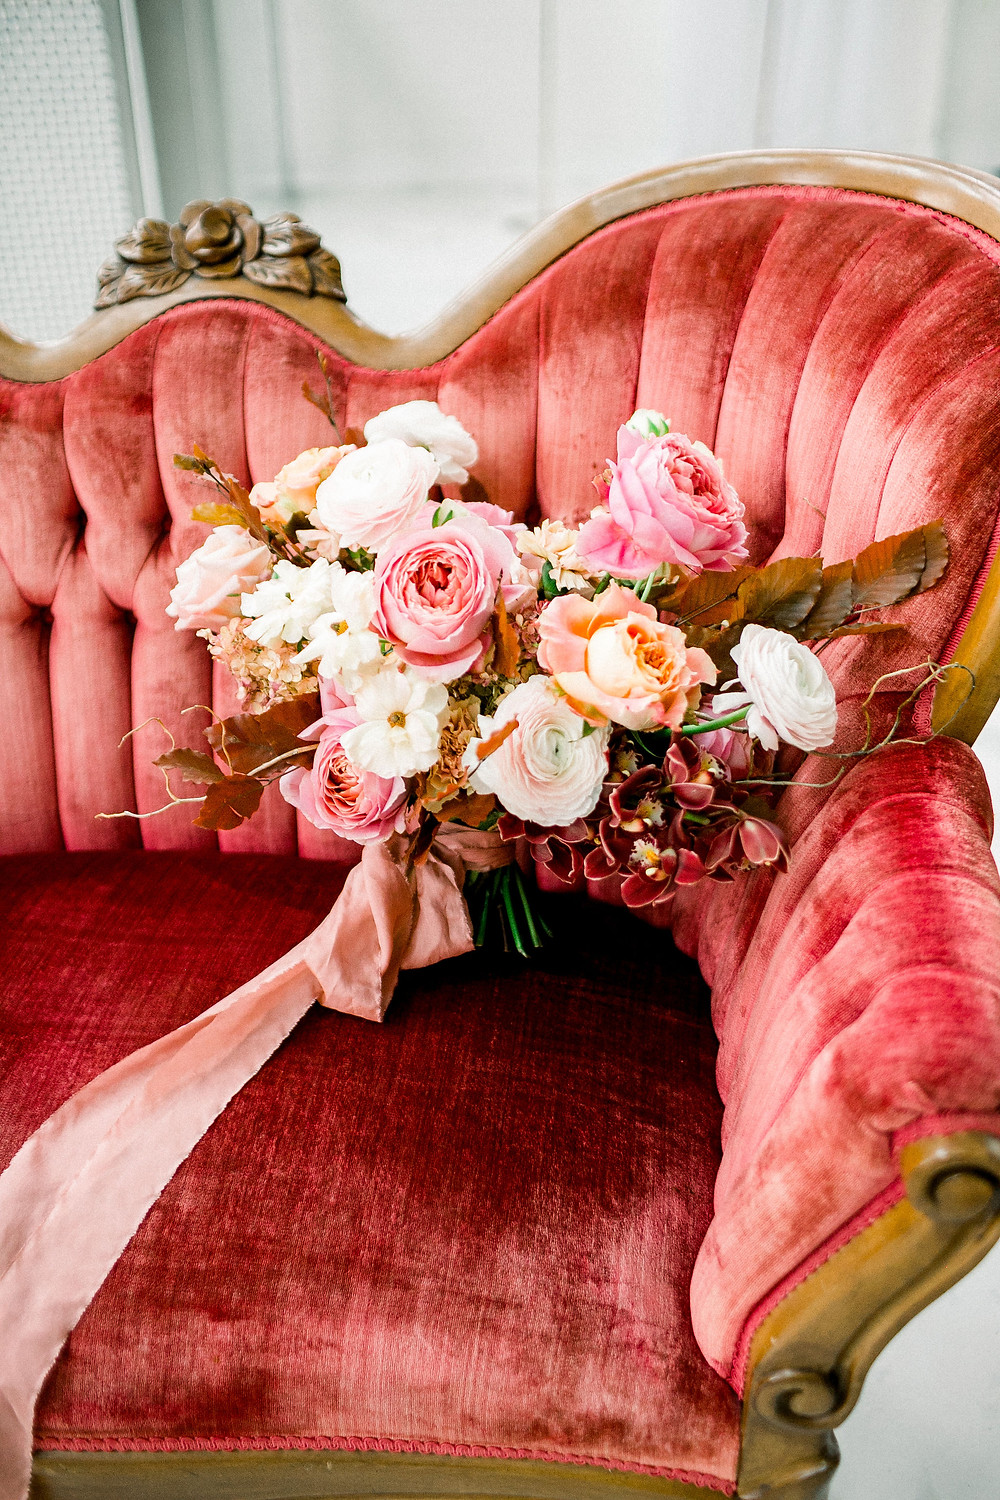 Studio Bloom Iowa bridal bouquet of garden roses, ranunculus, and orchids in pinks and peaches on antique red velvet couch